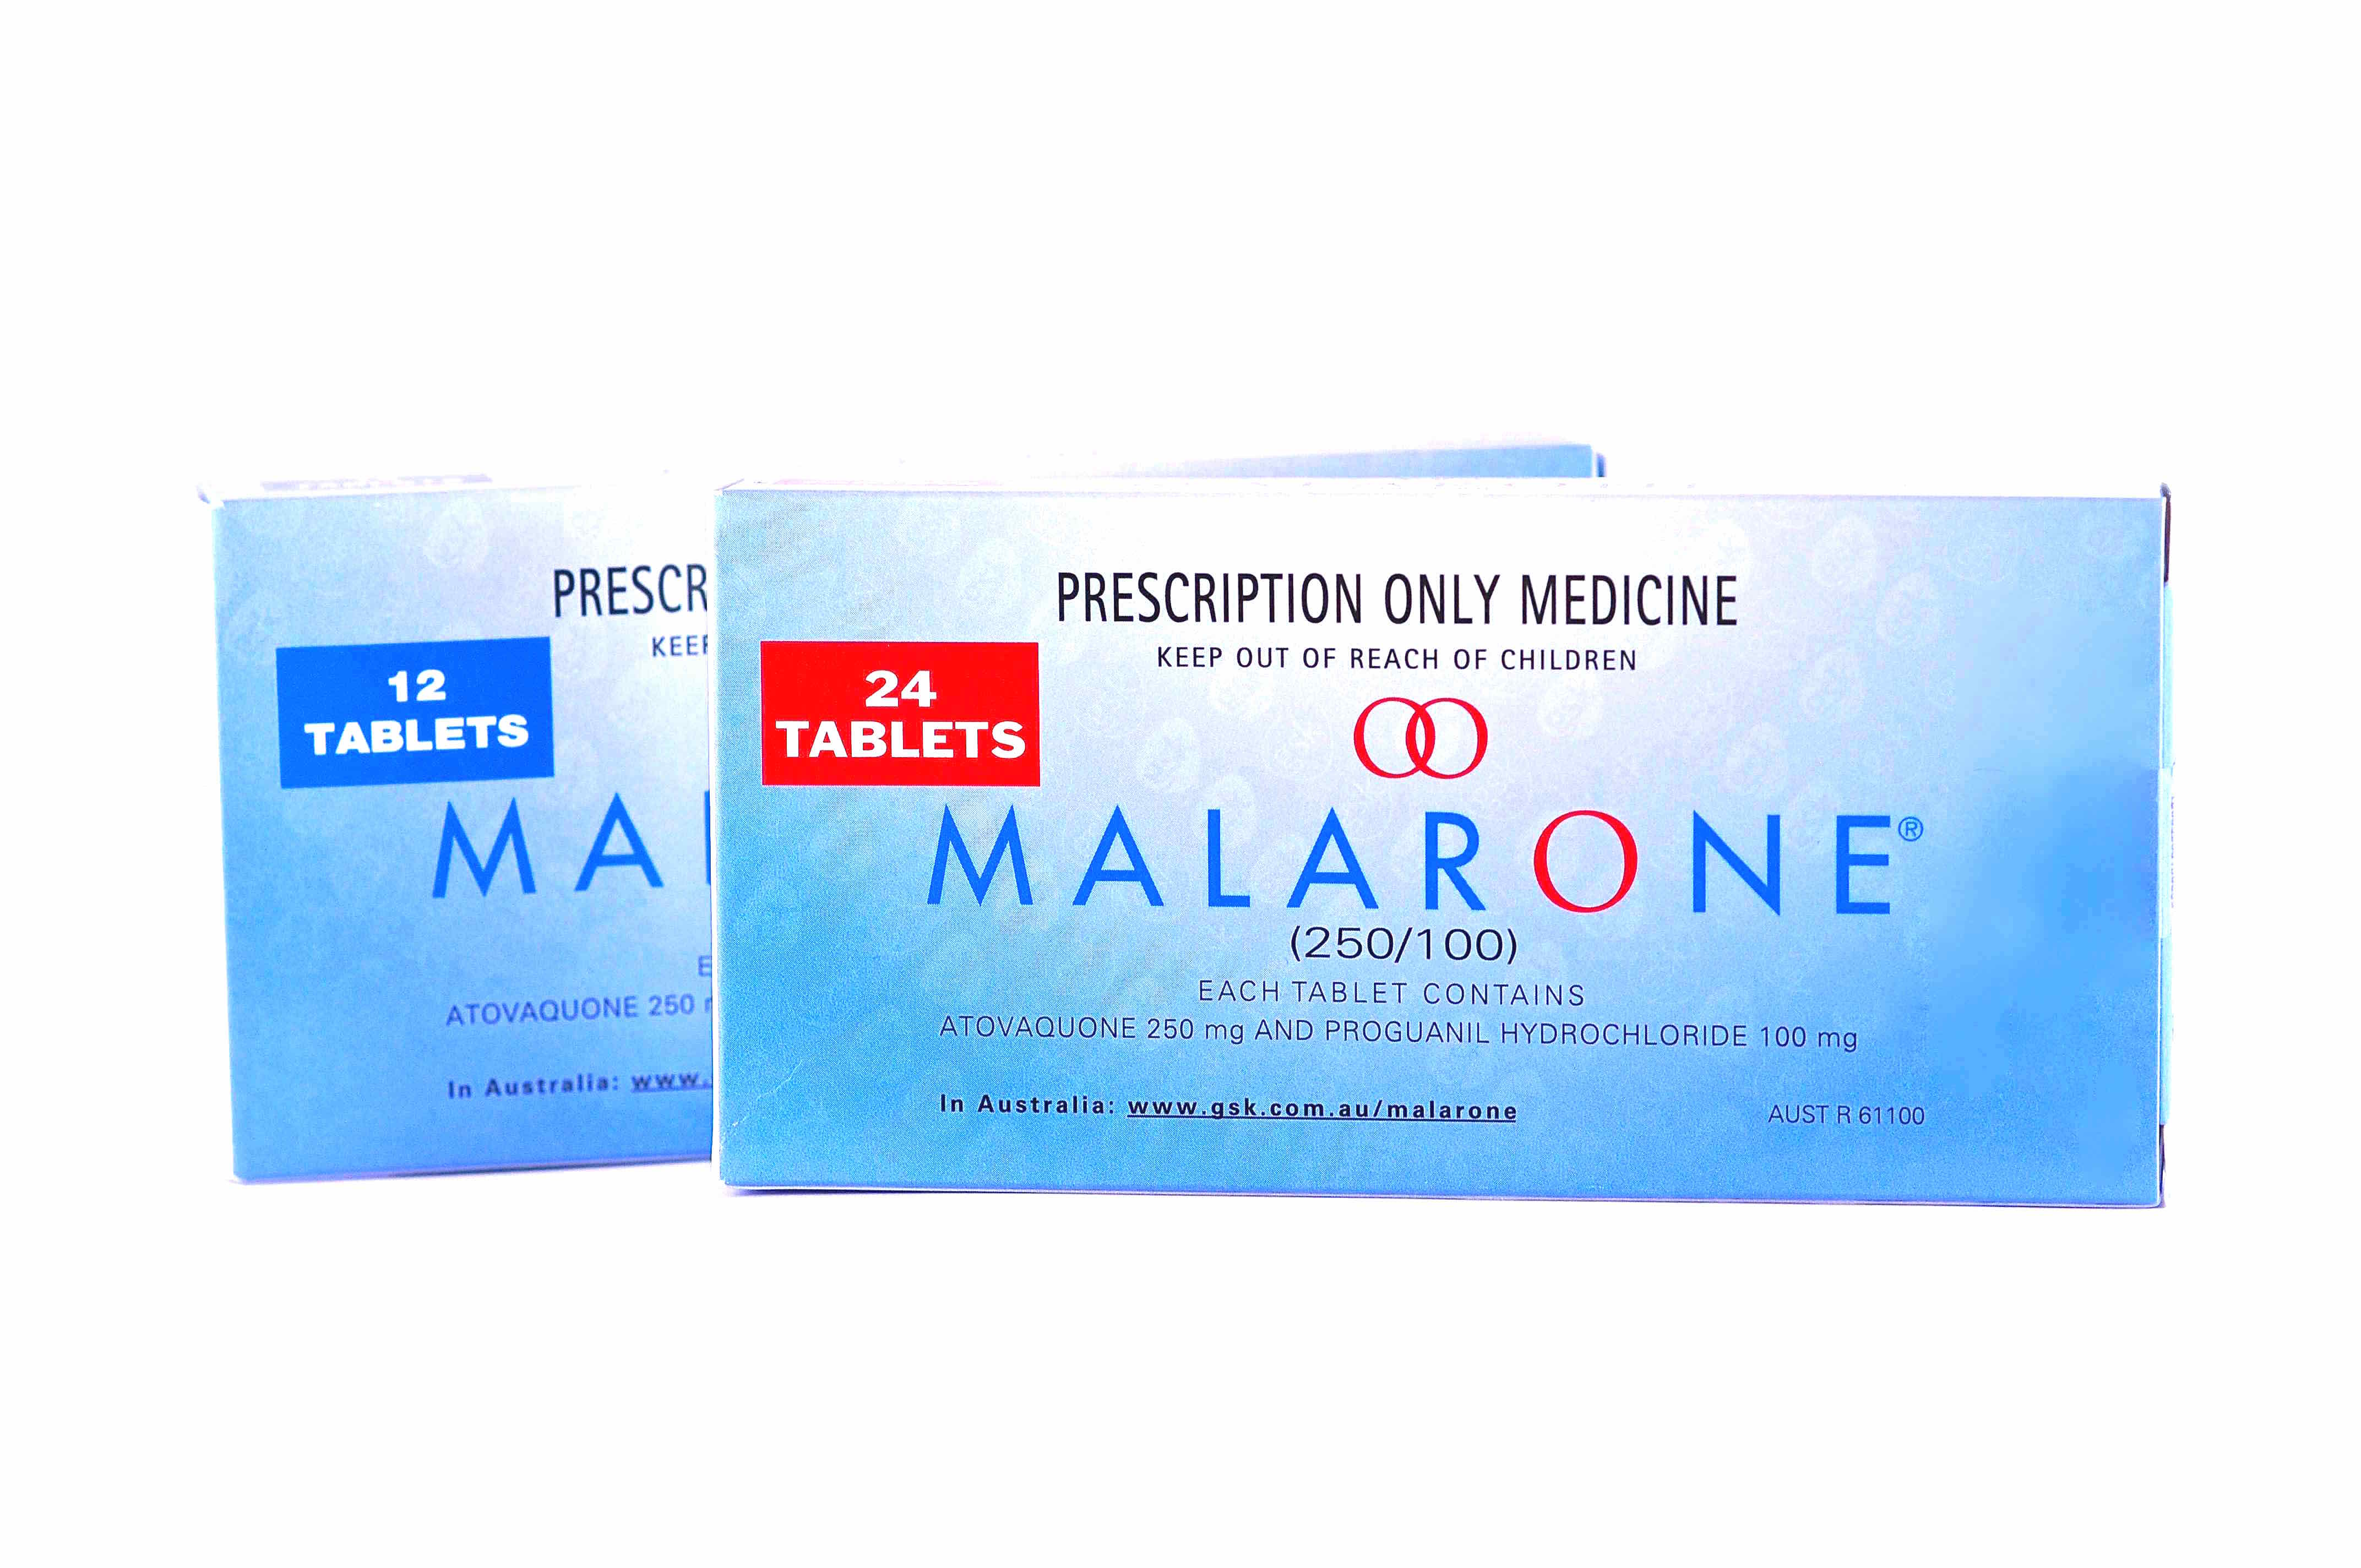 Weekly malaria tablets